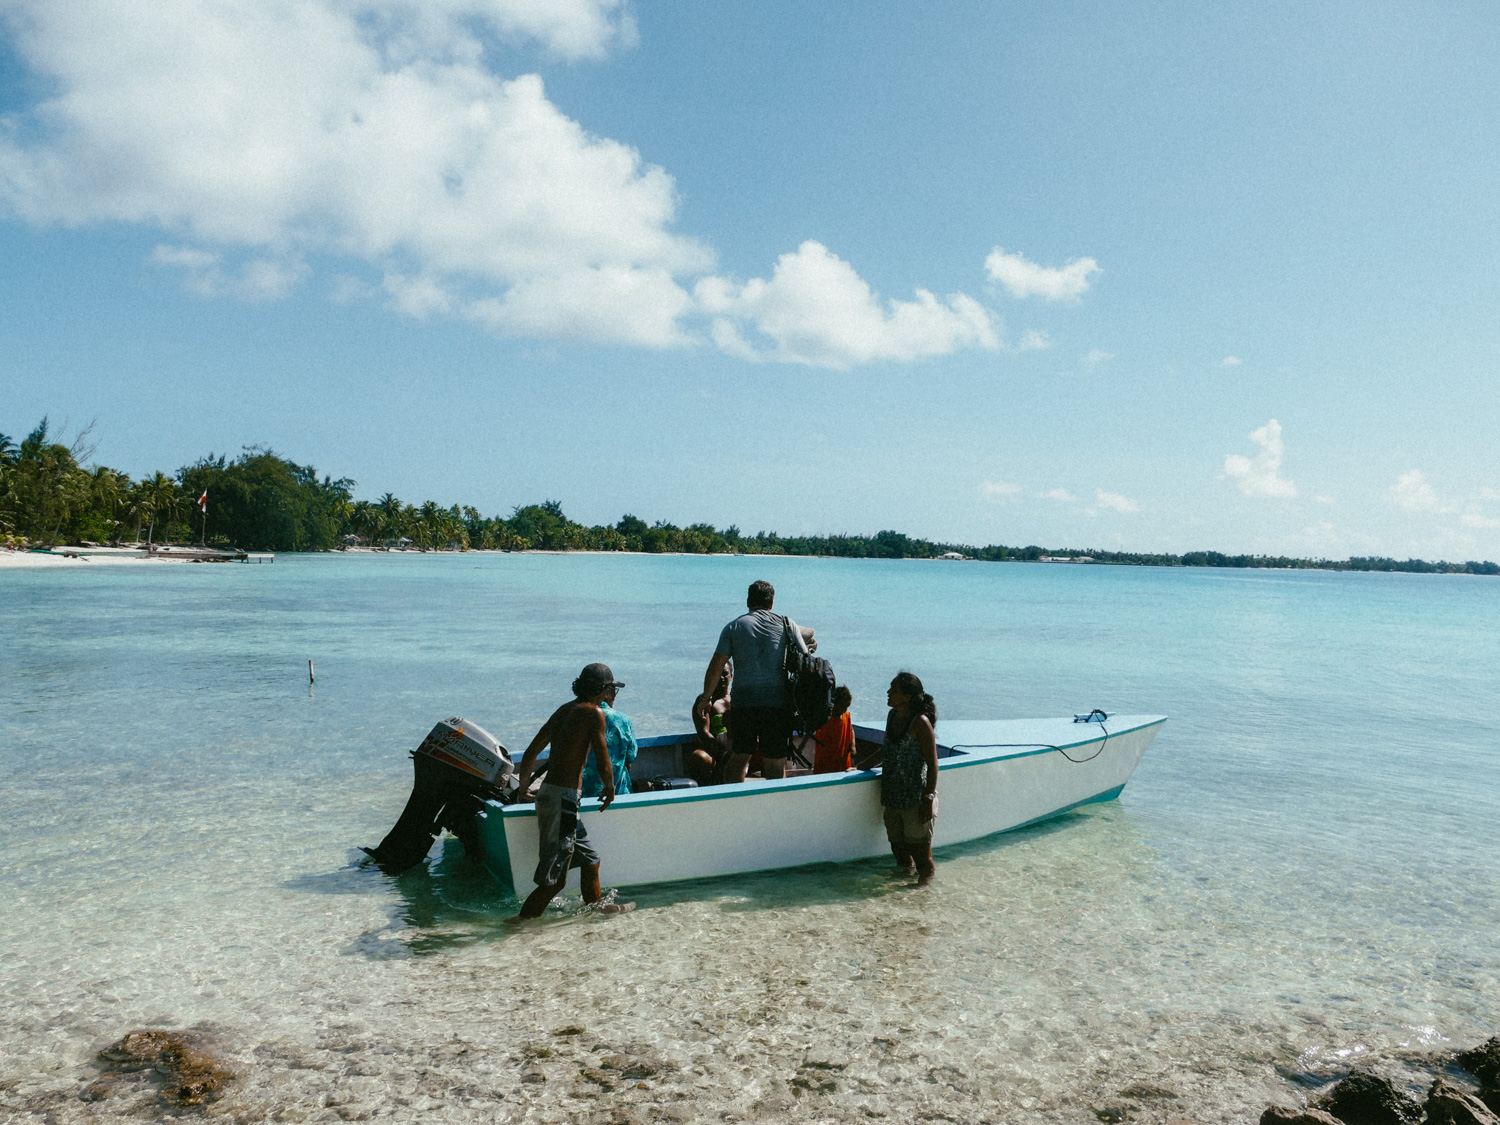 People getting in a boat on Tikehau, Tuamotus, French Polynesia, South Pacific.